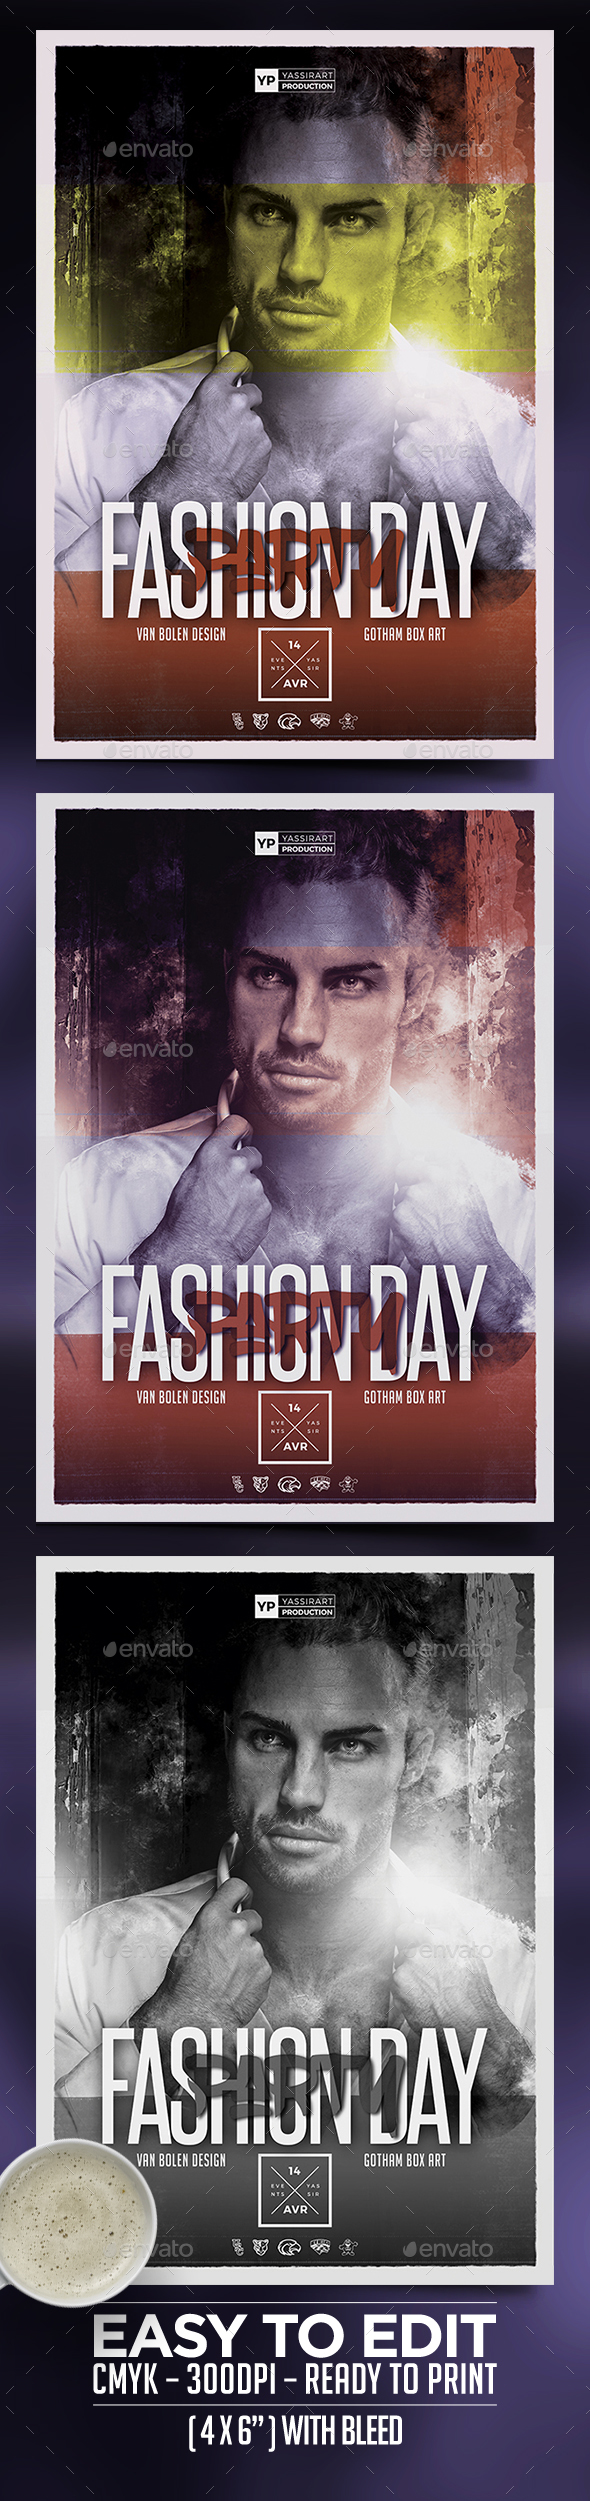 A3 Fashion Day Poster - Miscellaneous Events